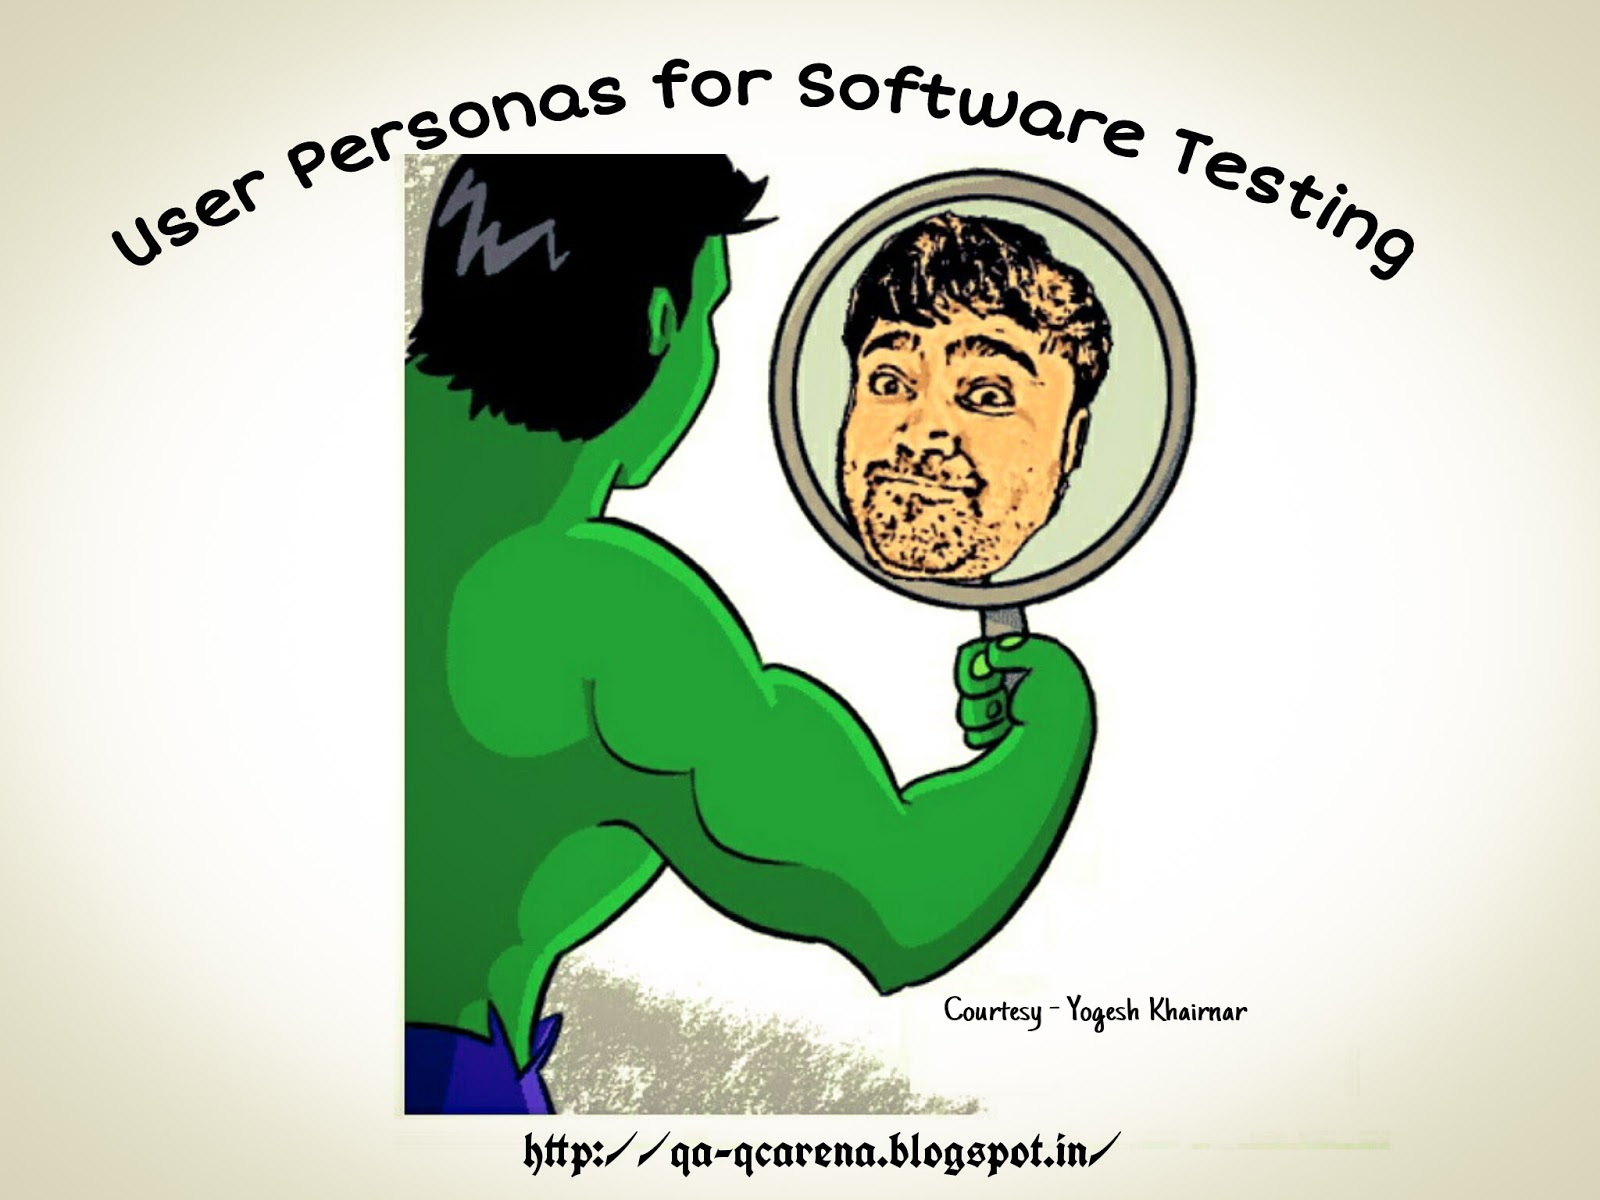 QA-QC Arena: Food For Thought – User Personas for Software Testing